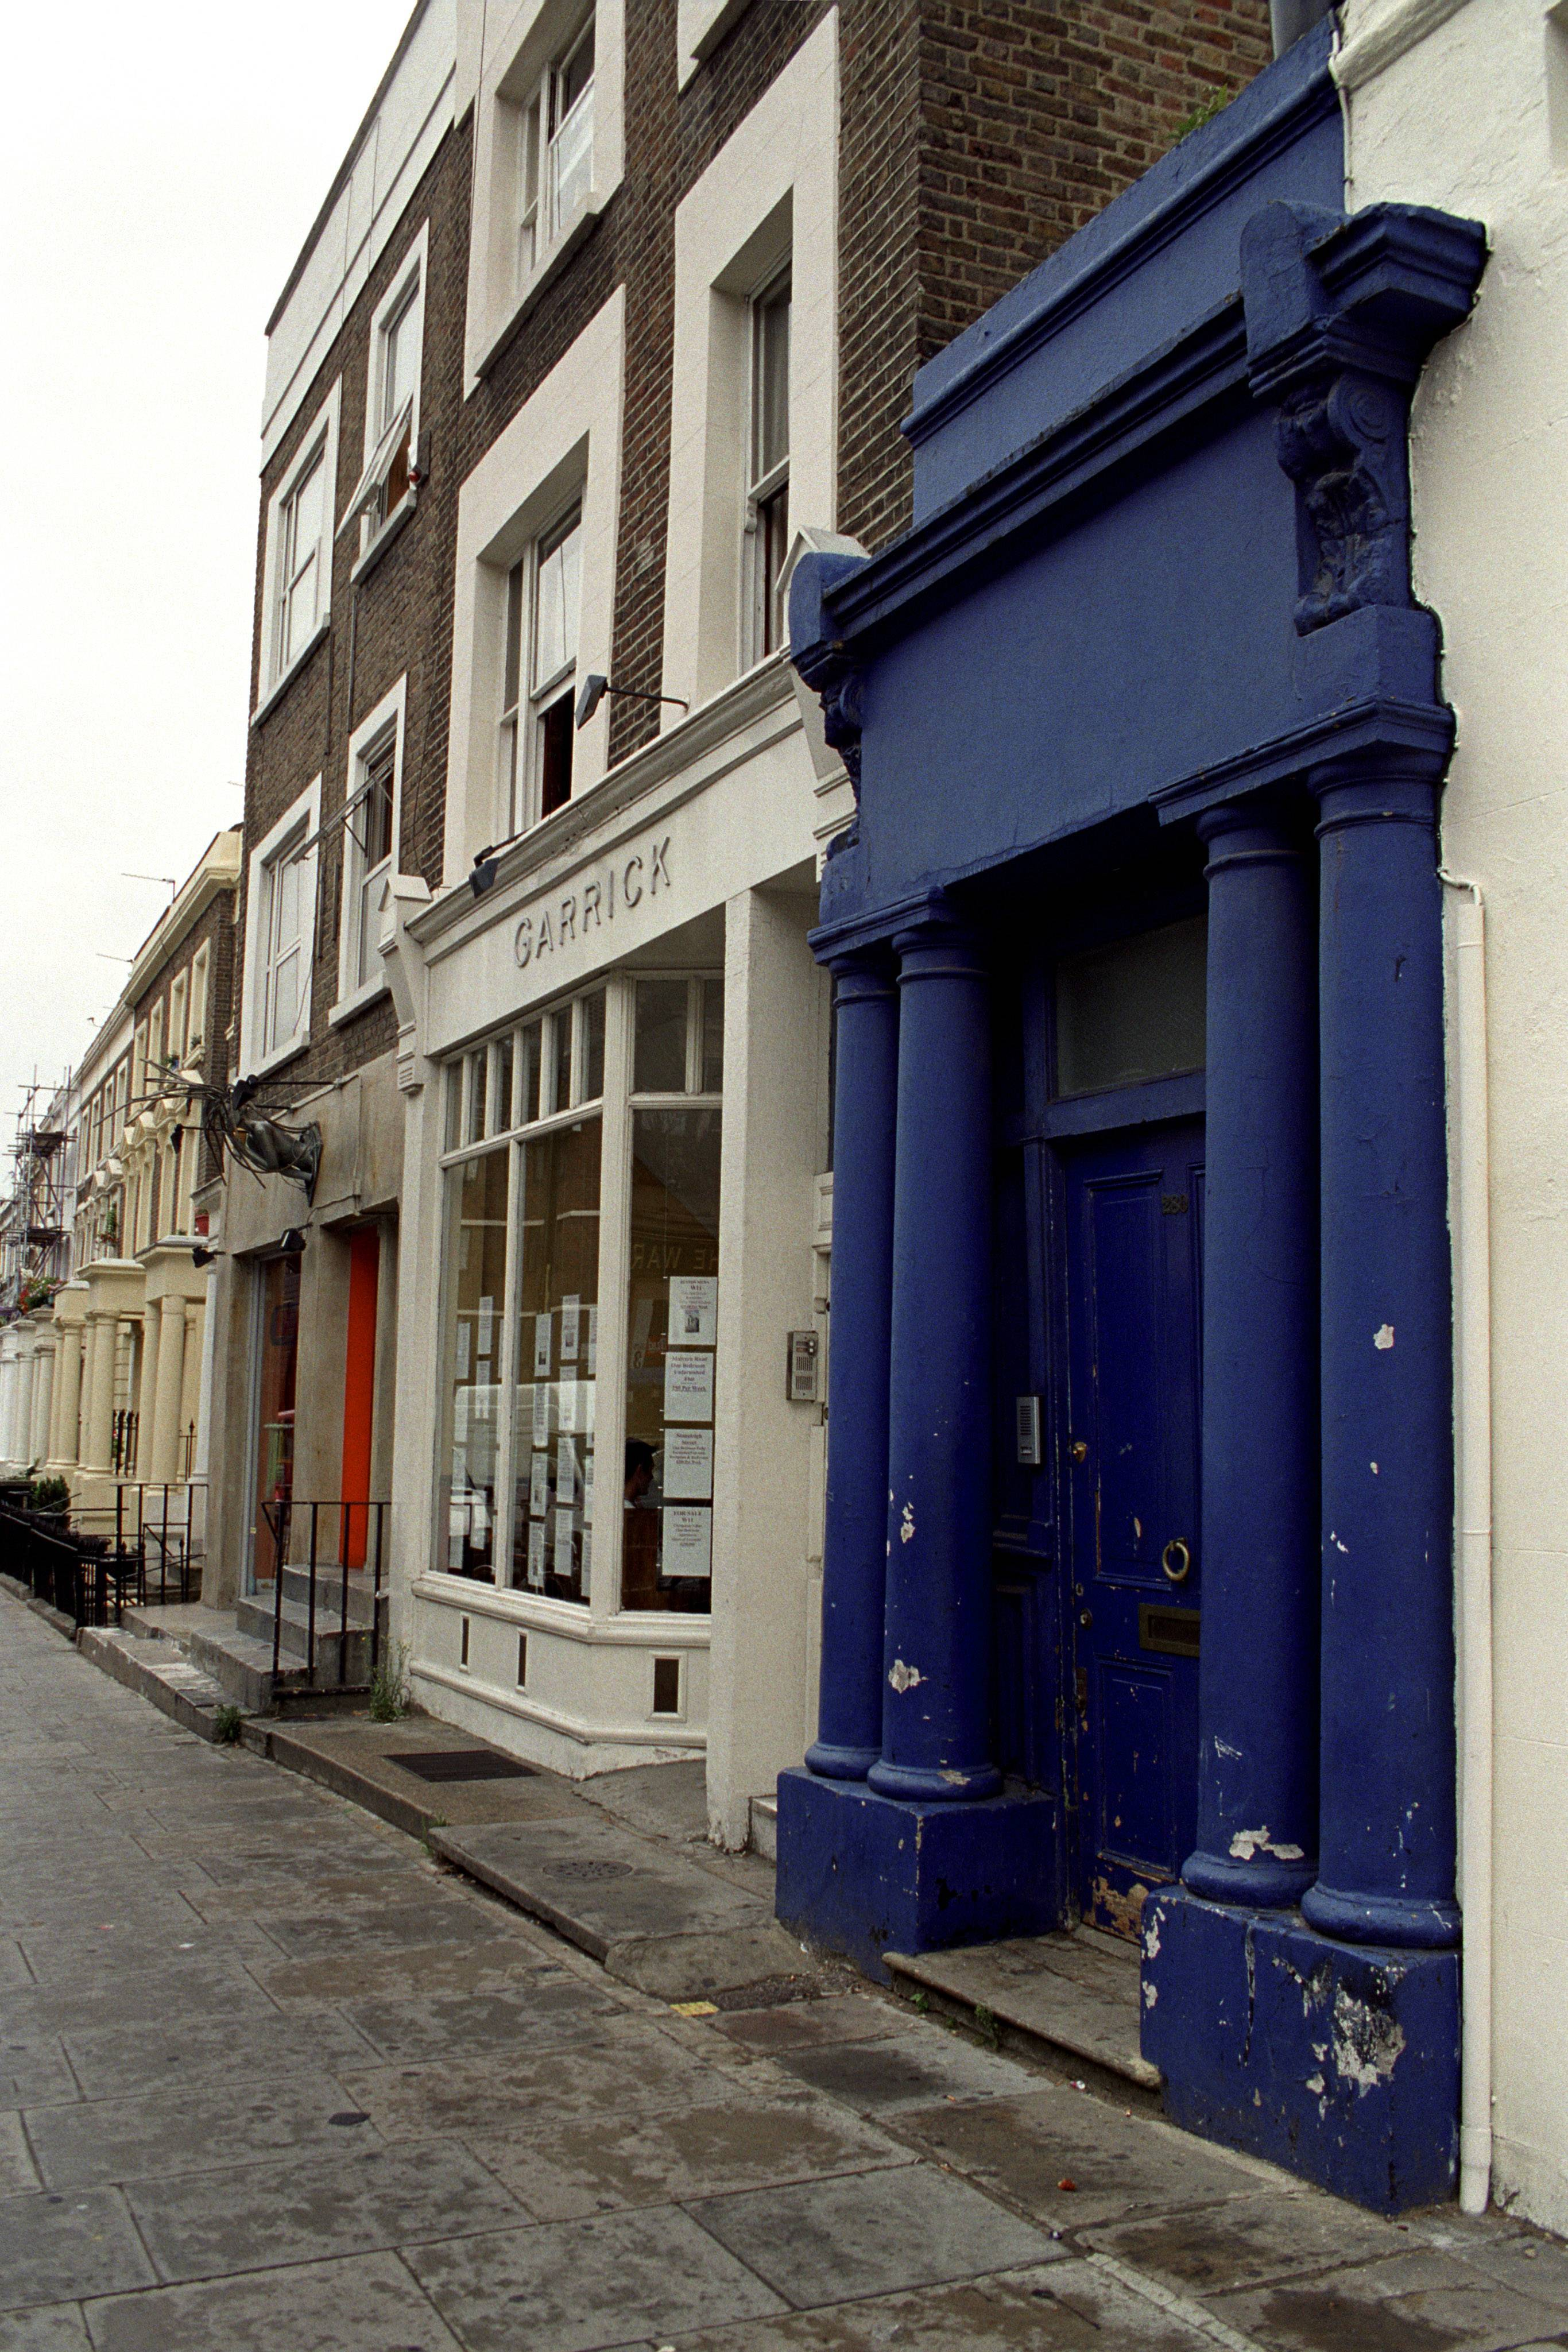 Notting Hill London: Notting Hill, London, 1950-2000: Murder, Race Riots And